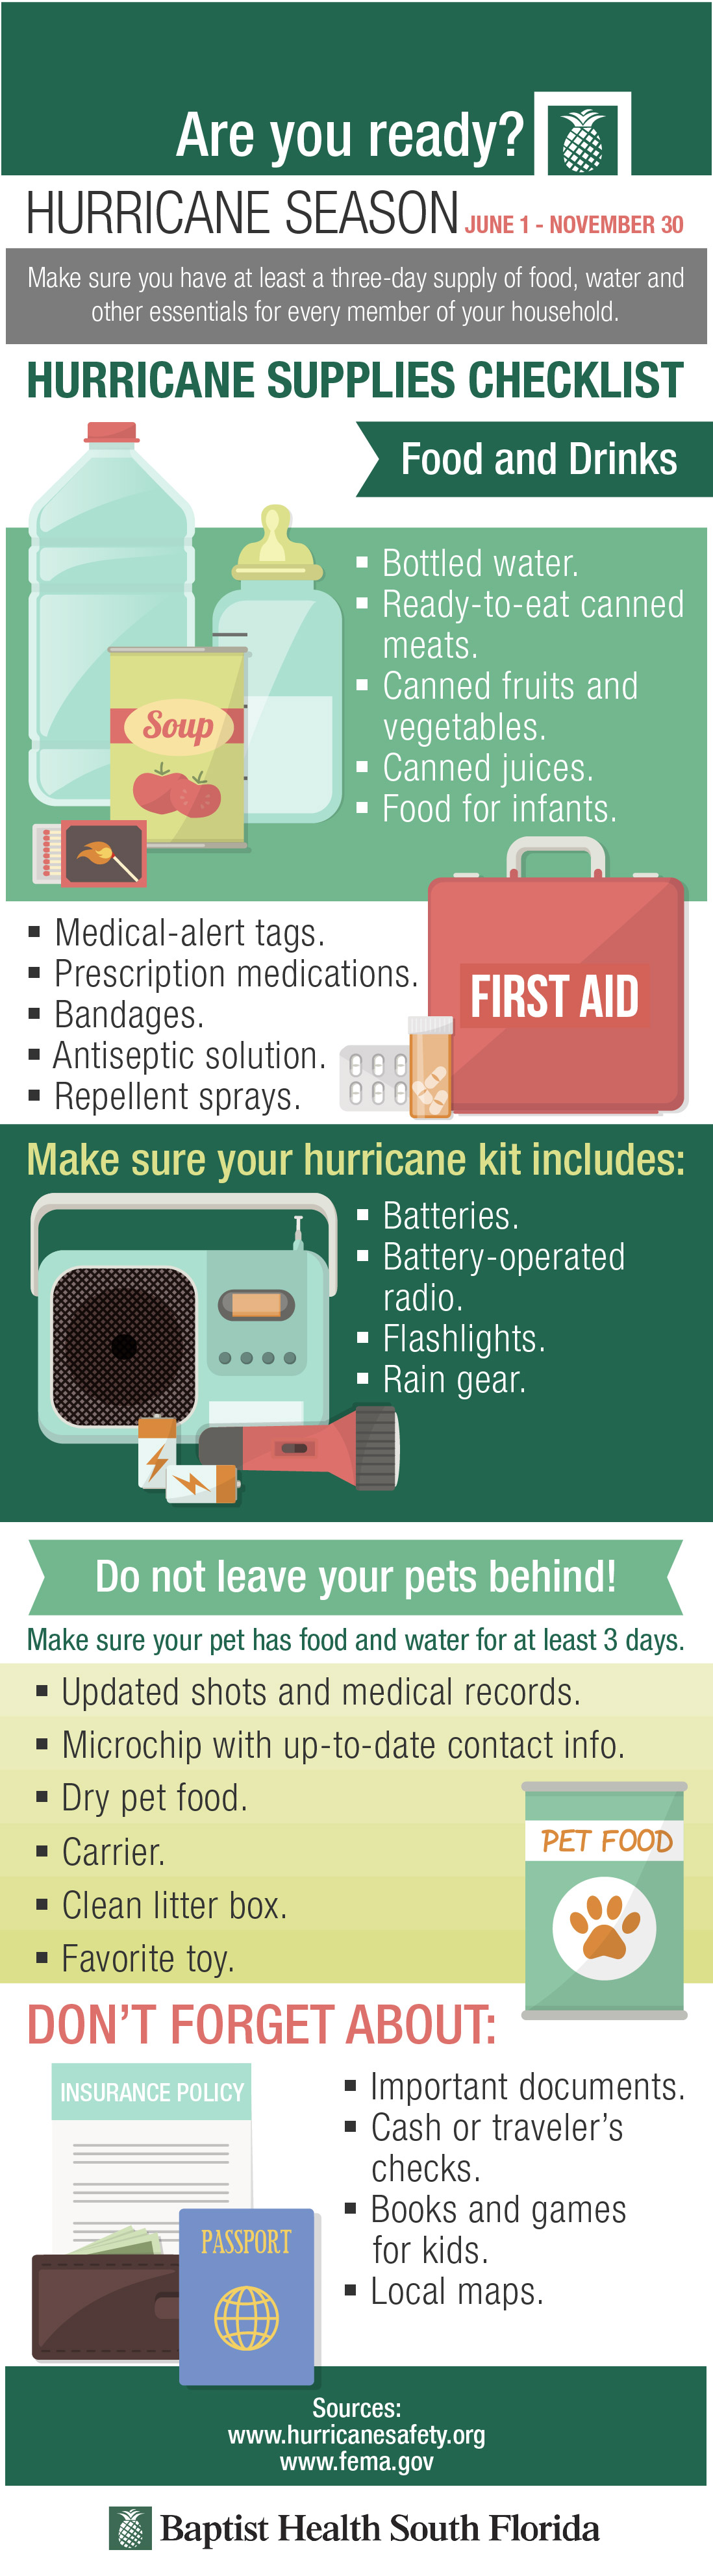 are you fully prepared? hurricane season checklist (infographic)